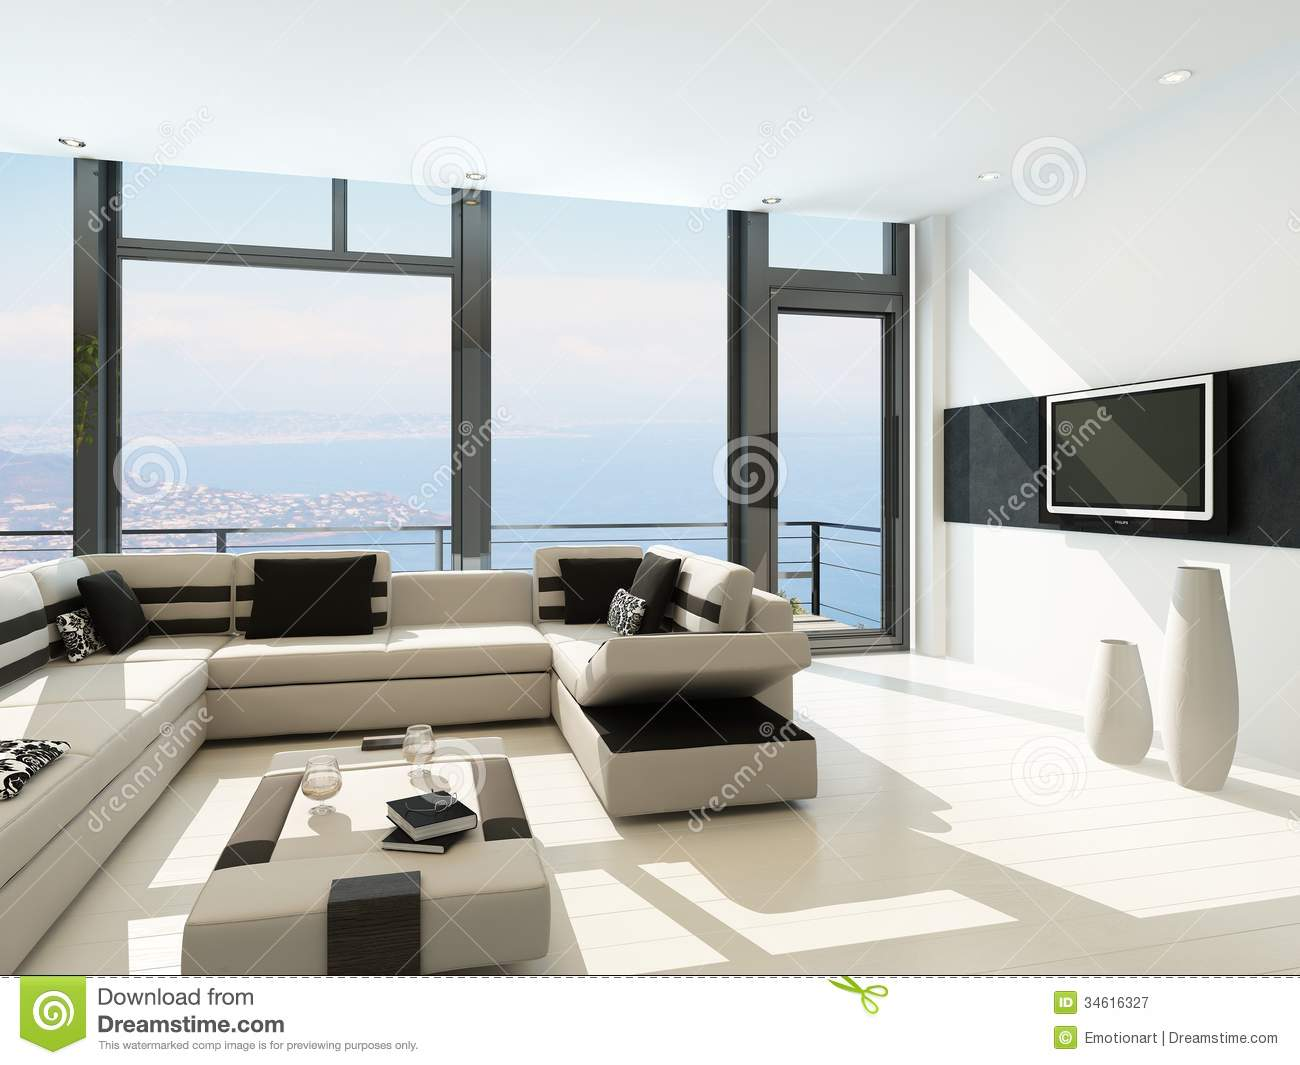 Modern white living room interior with splendid seascape view royalty free stock photography - Modern intiror room ...